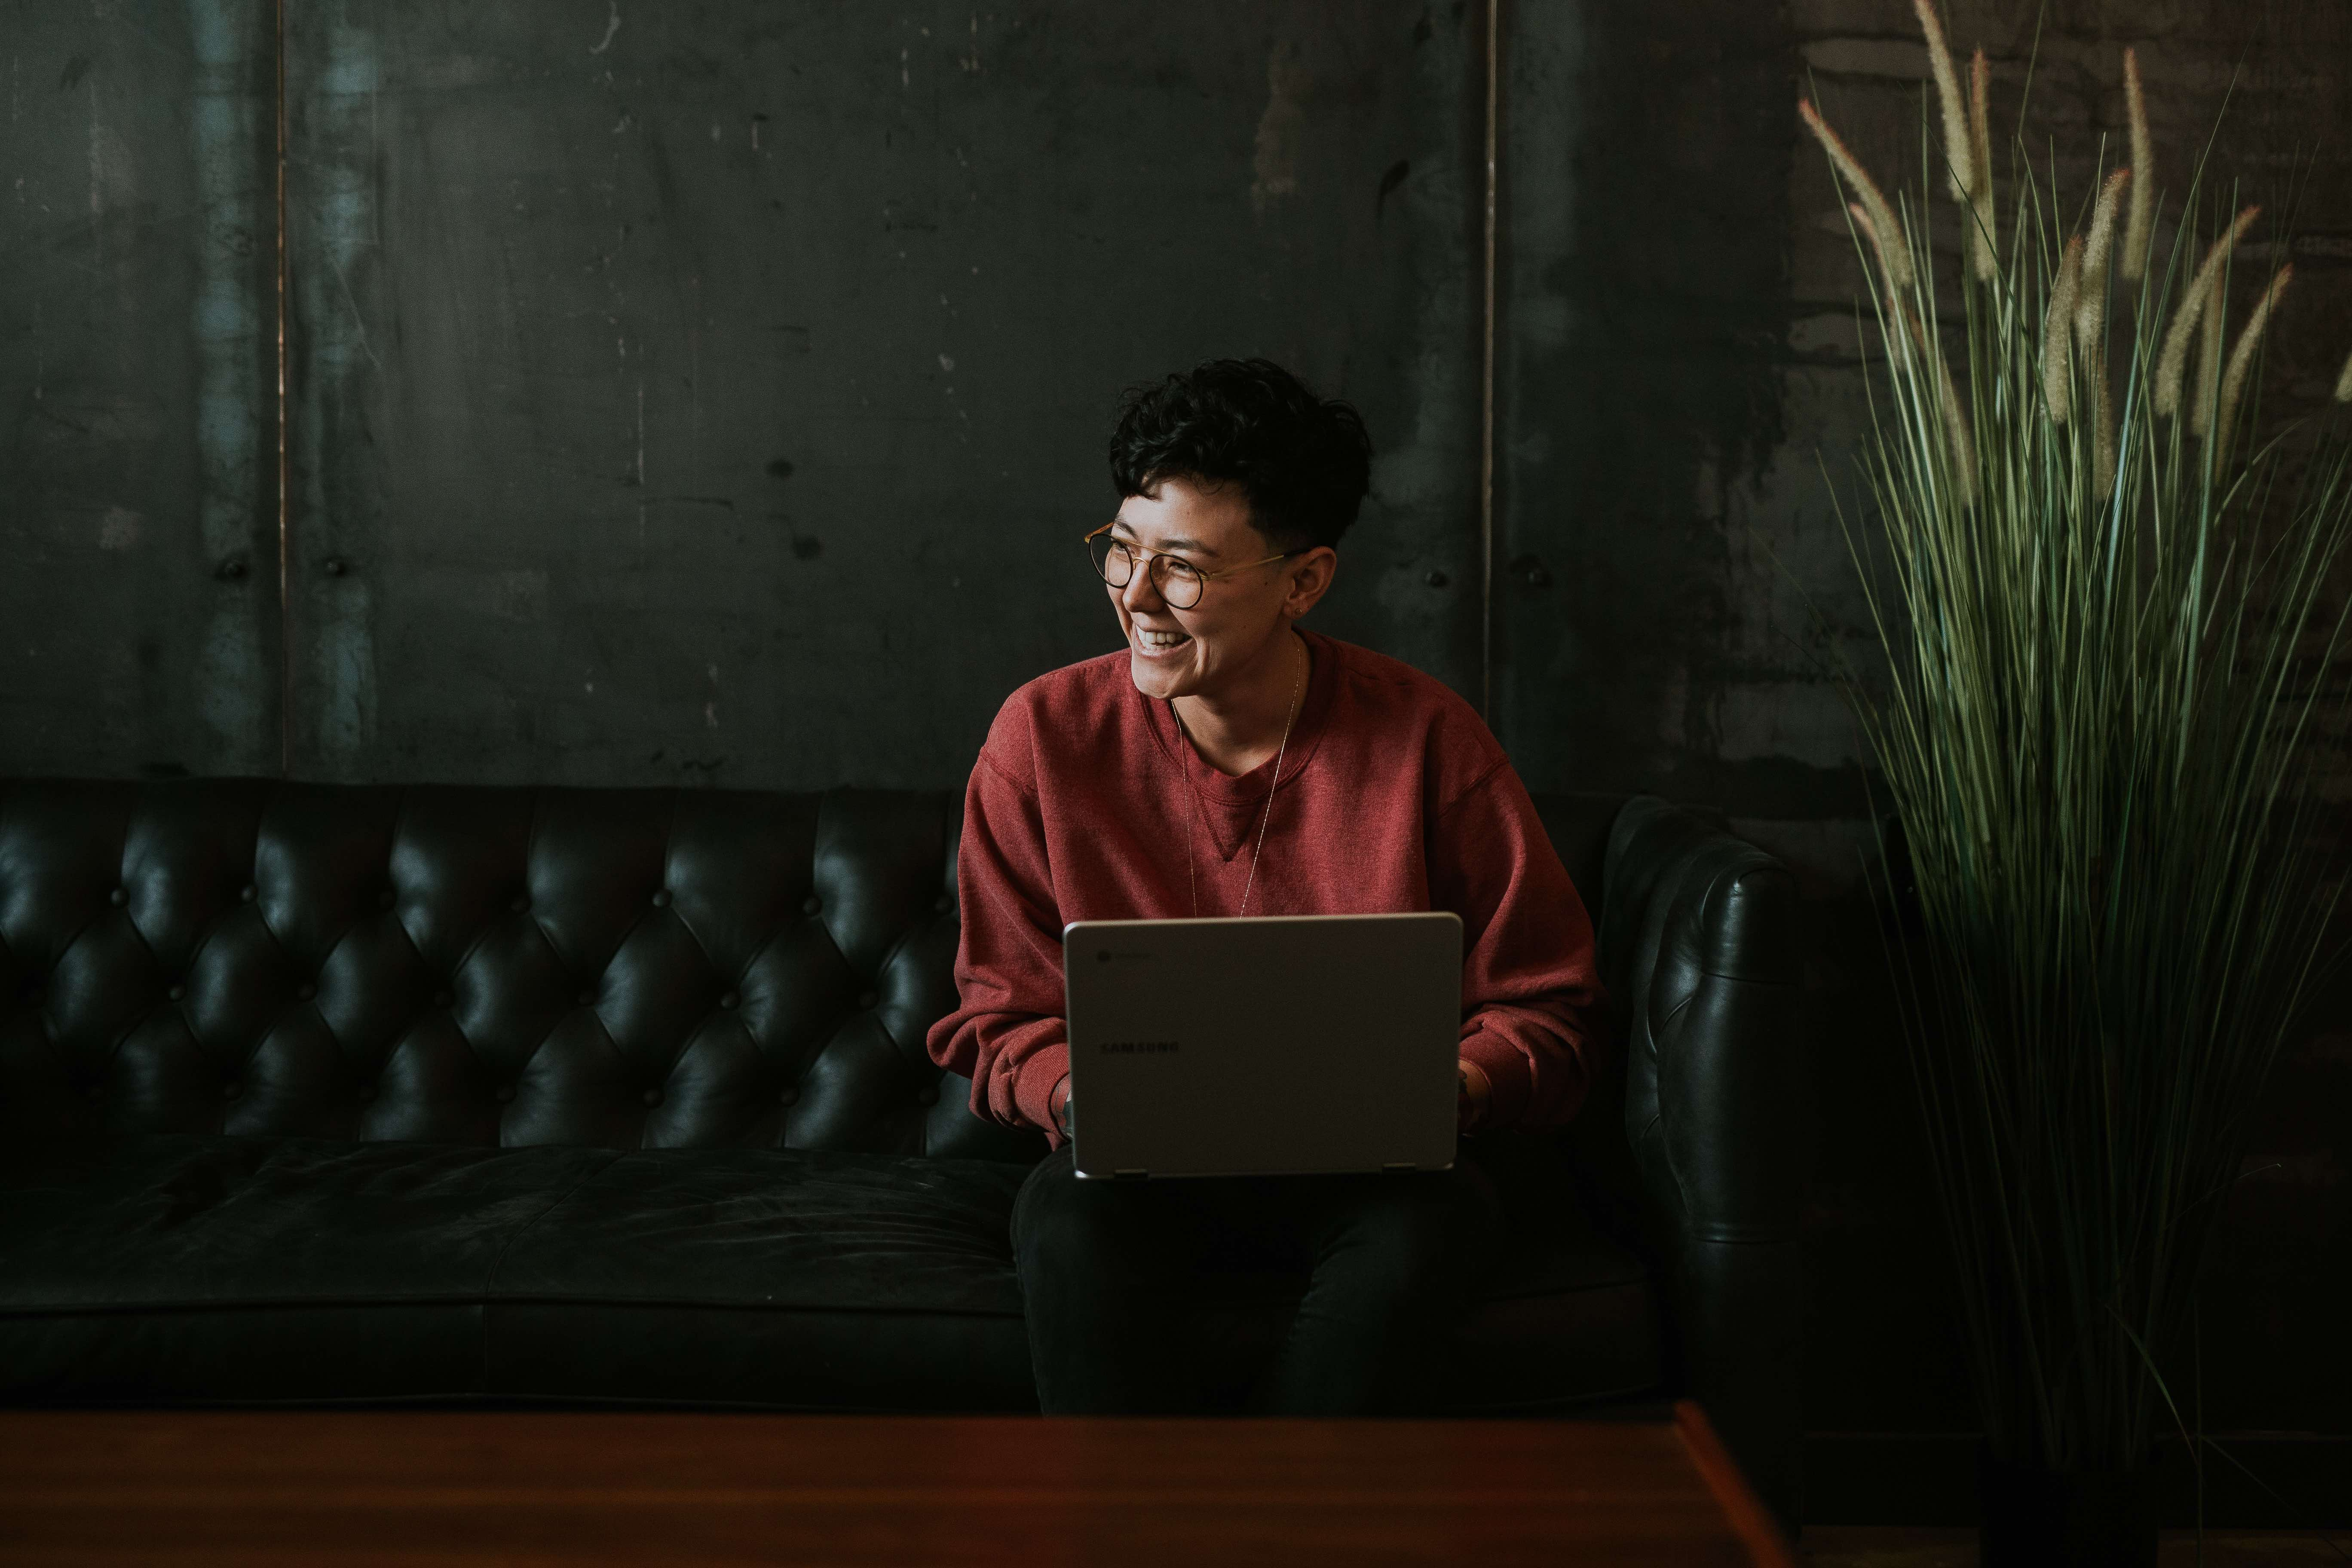 Woman on Black Leather Couch uses a Laptop While Smiling